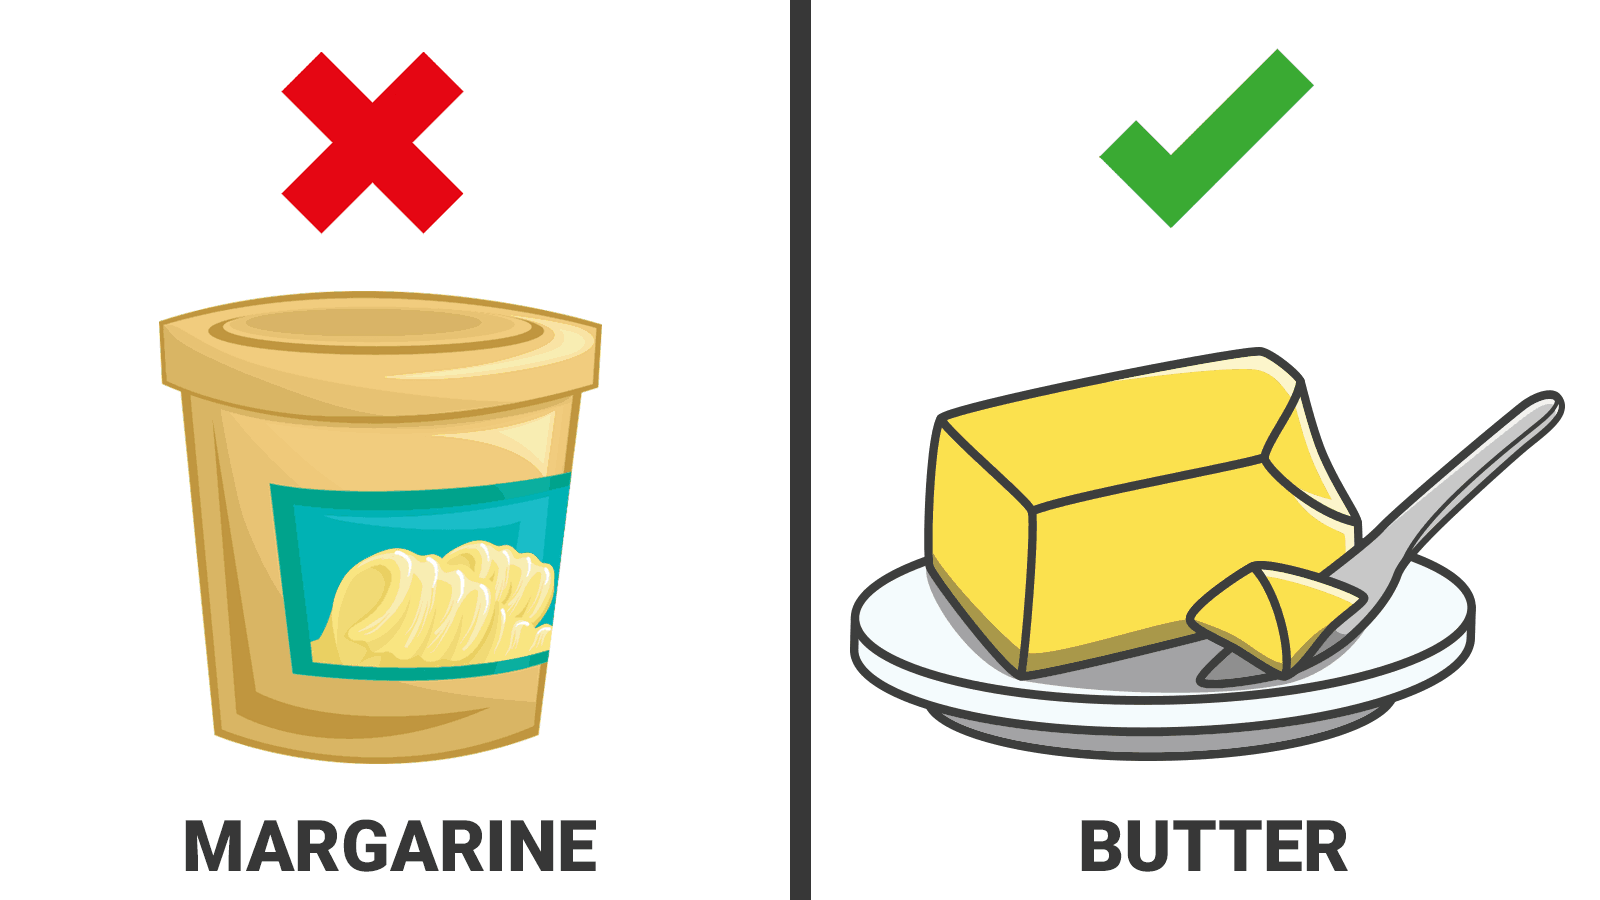 butter for health